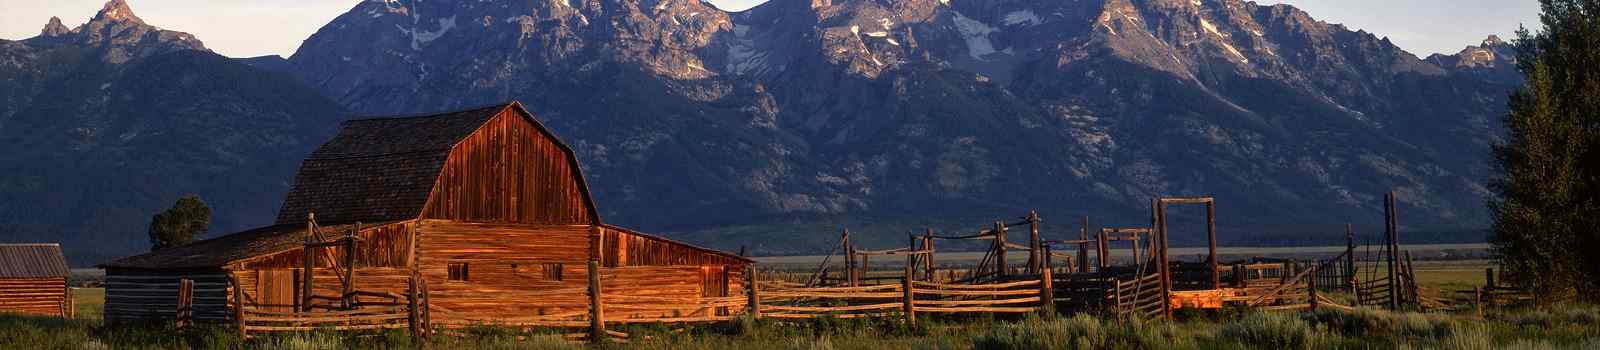 GOOSEWING-RANCH -USA Ranch An old ranch and the Teton Mountain Range in Grand Teton  22419001